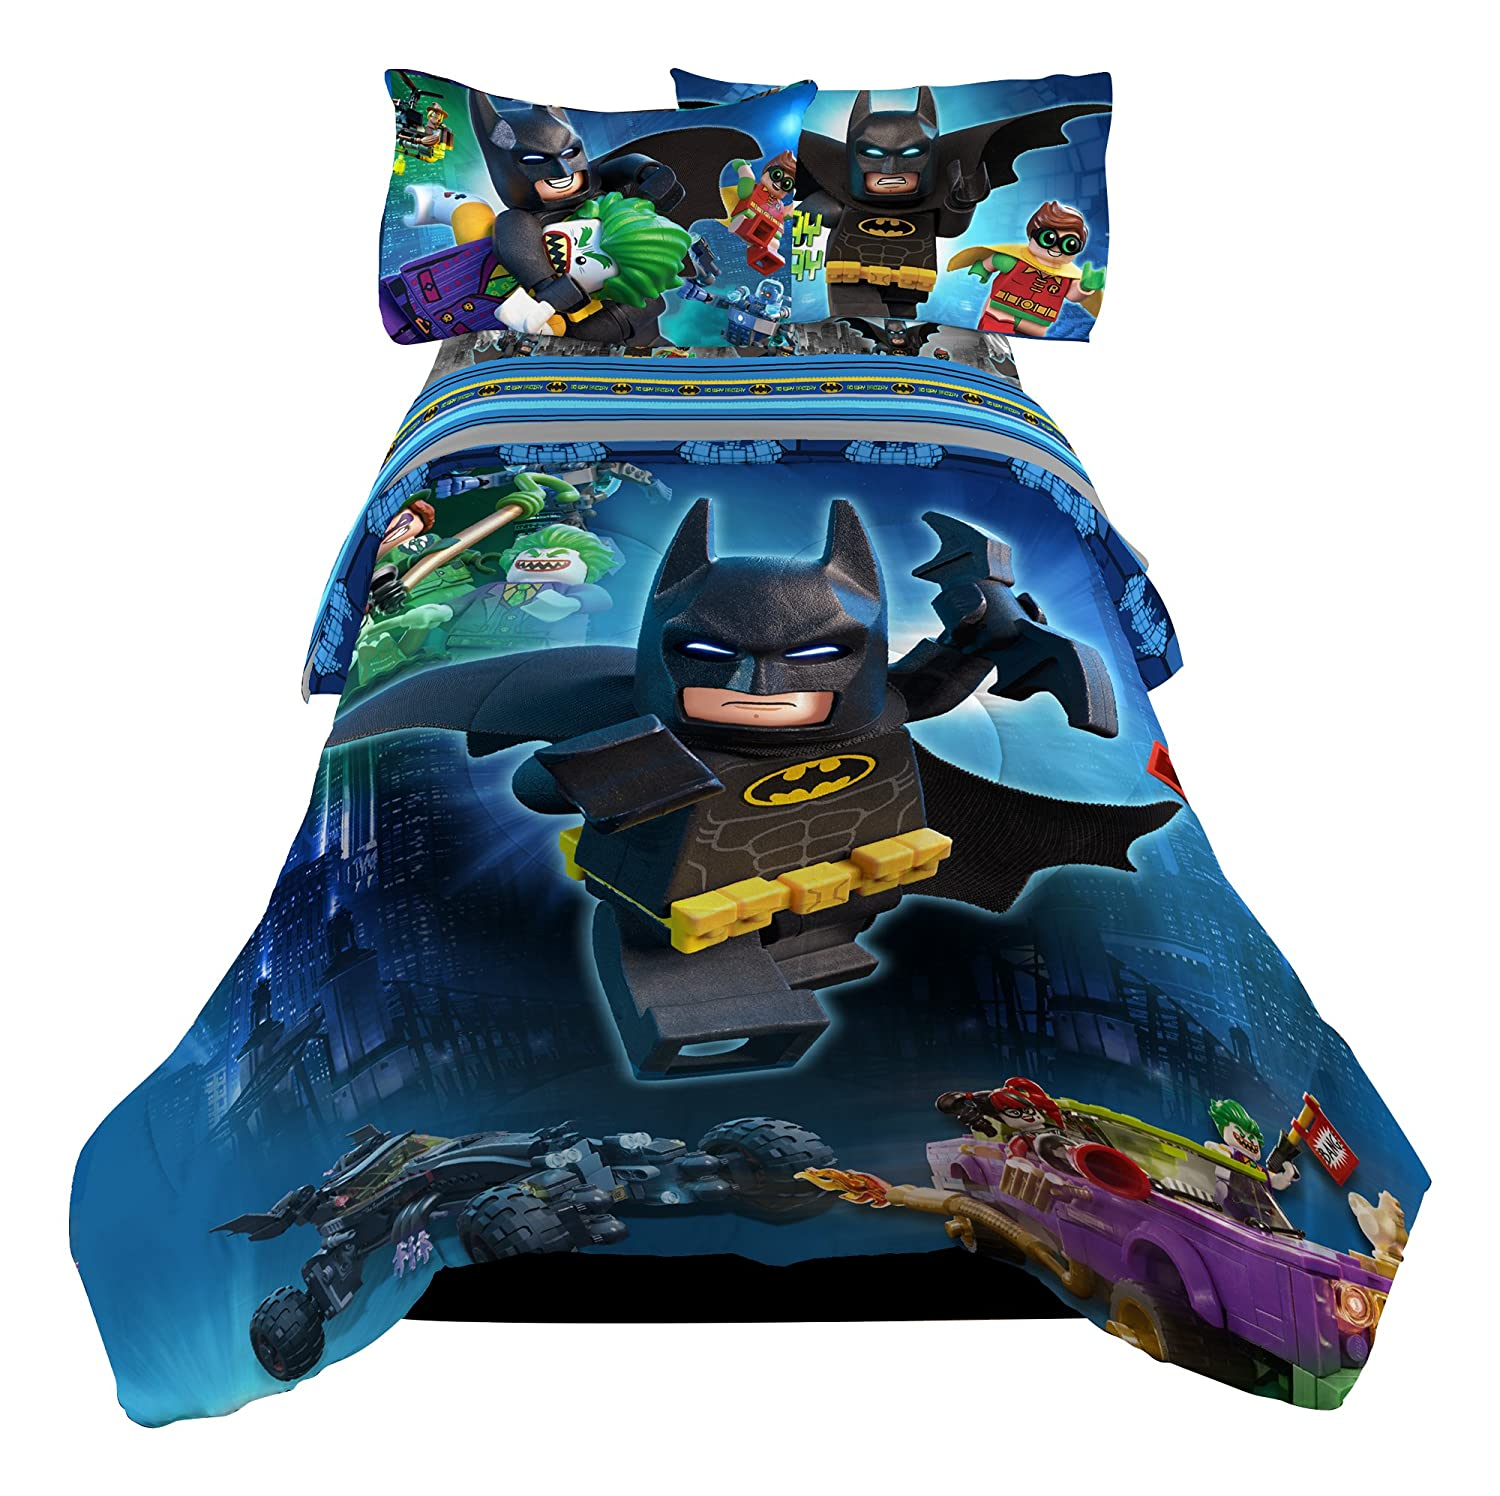 LEGO Batman Way Brozay Twin/Full Comforter